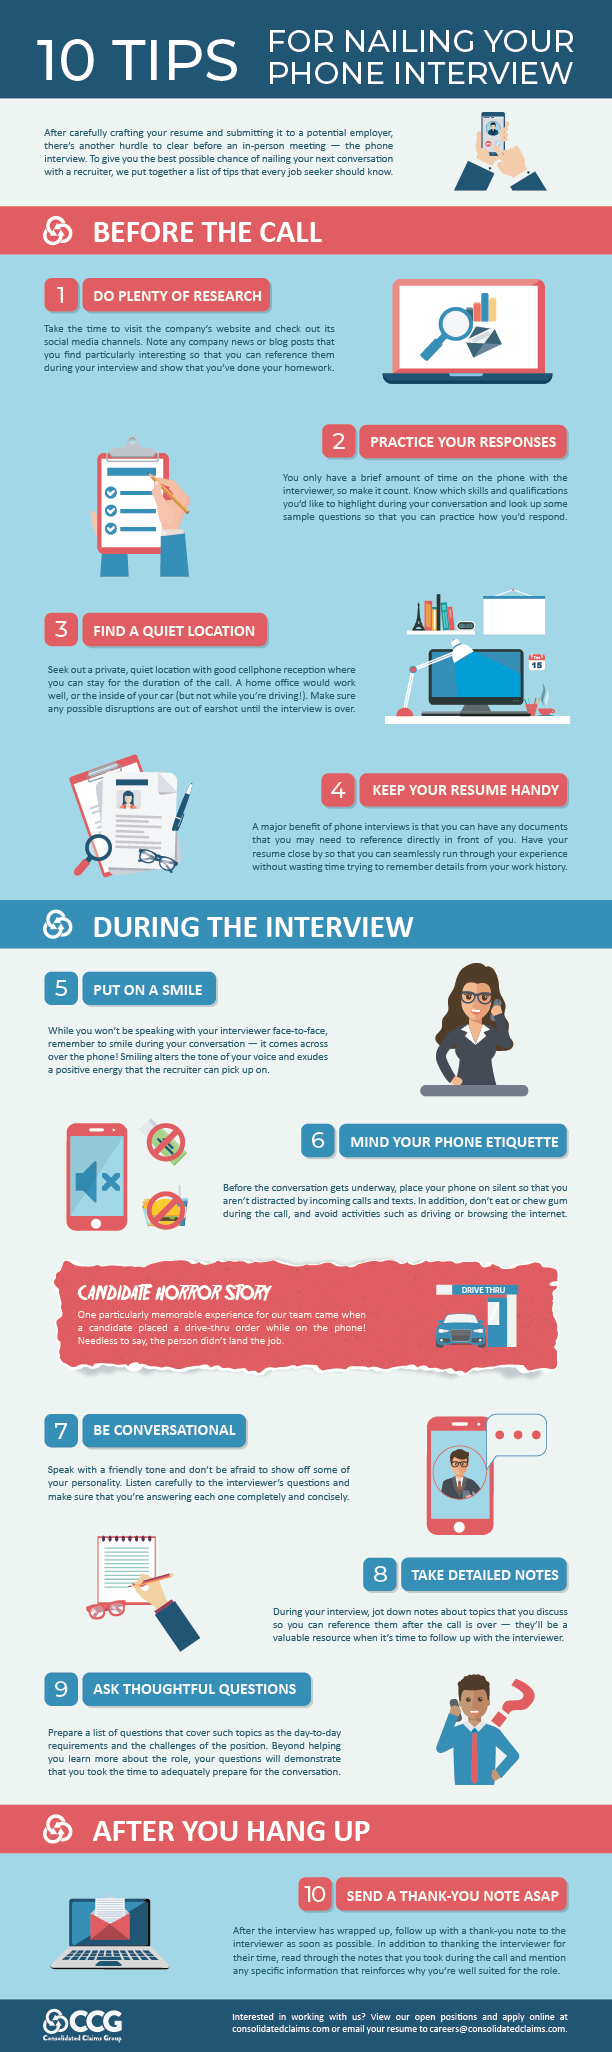 CCG Phone Interview Tips